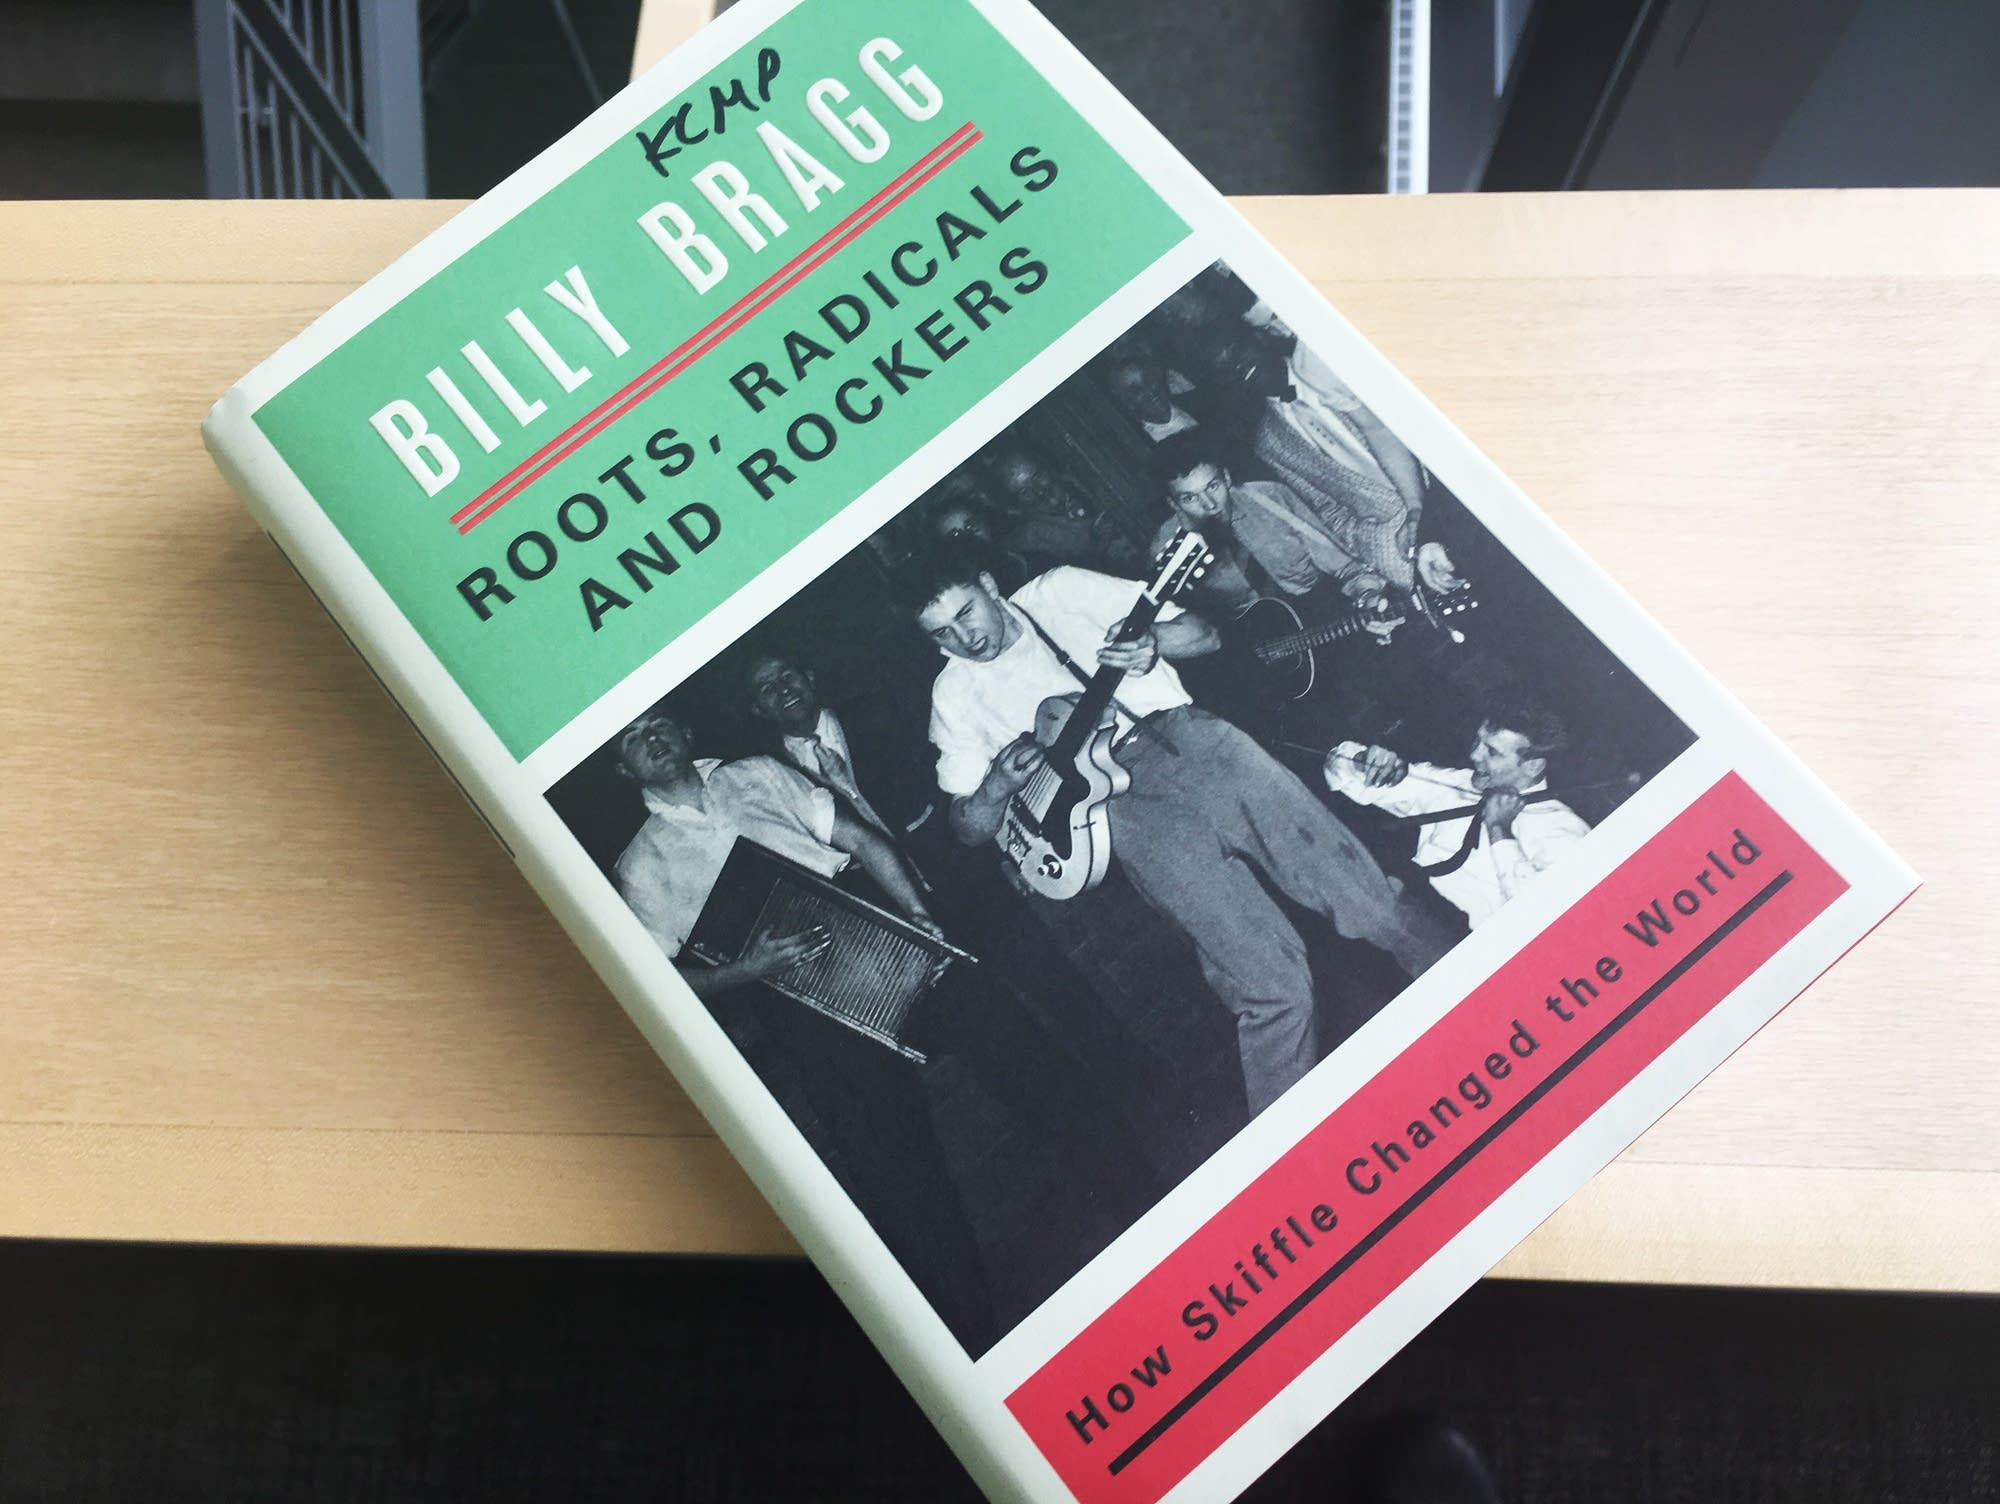 Billy Bragg's 'Roots, Radicals and Rockers'